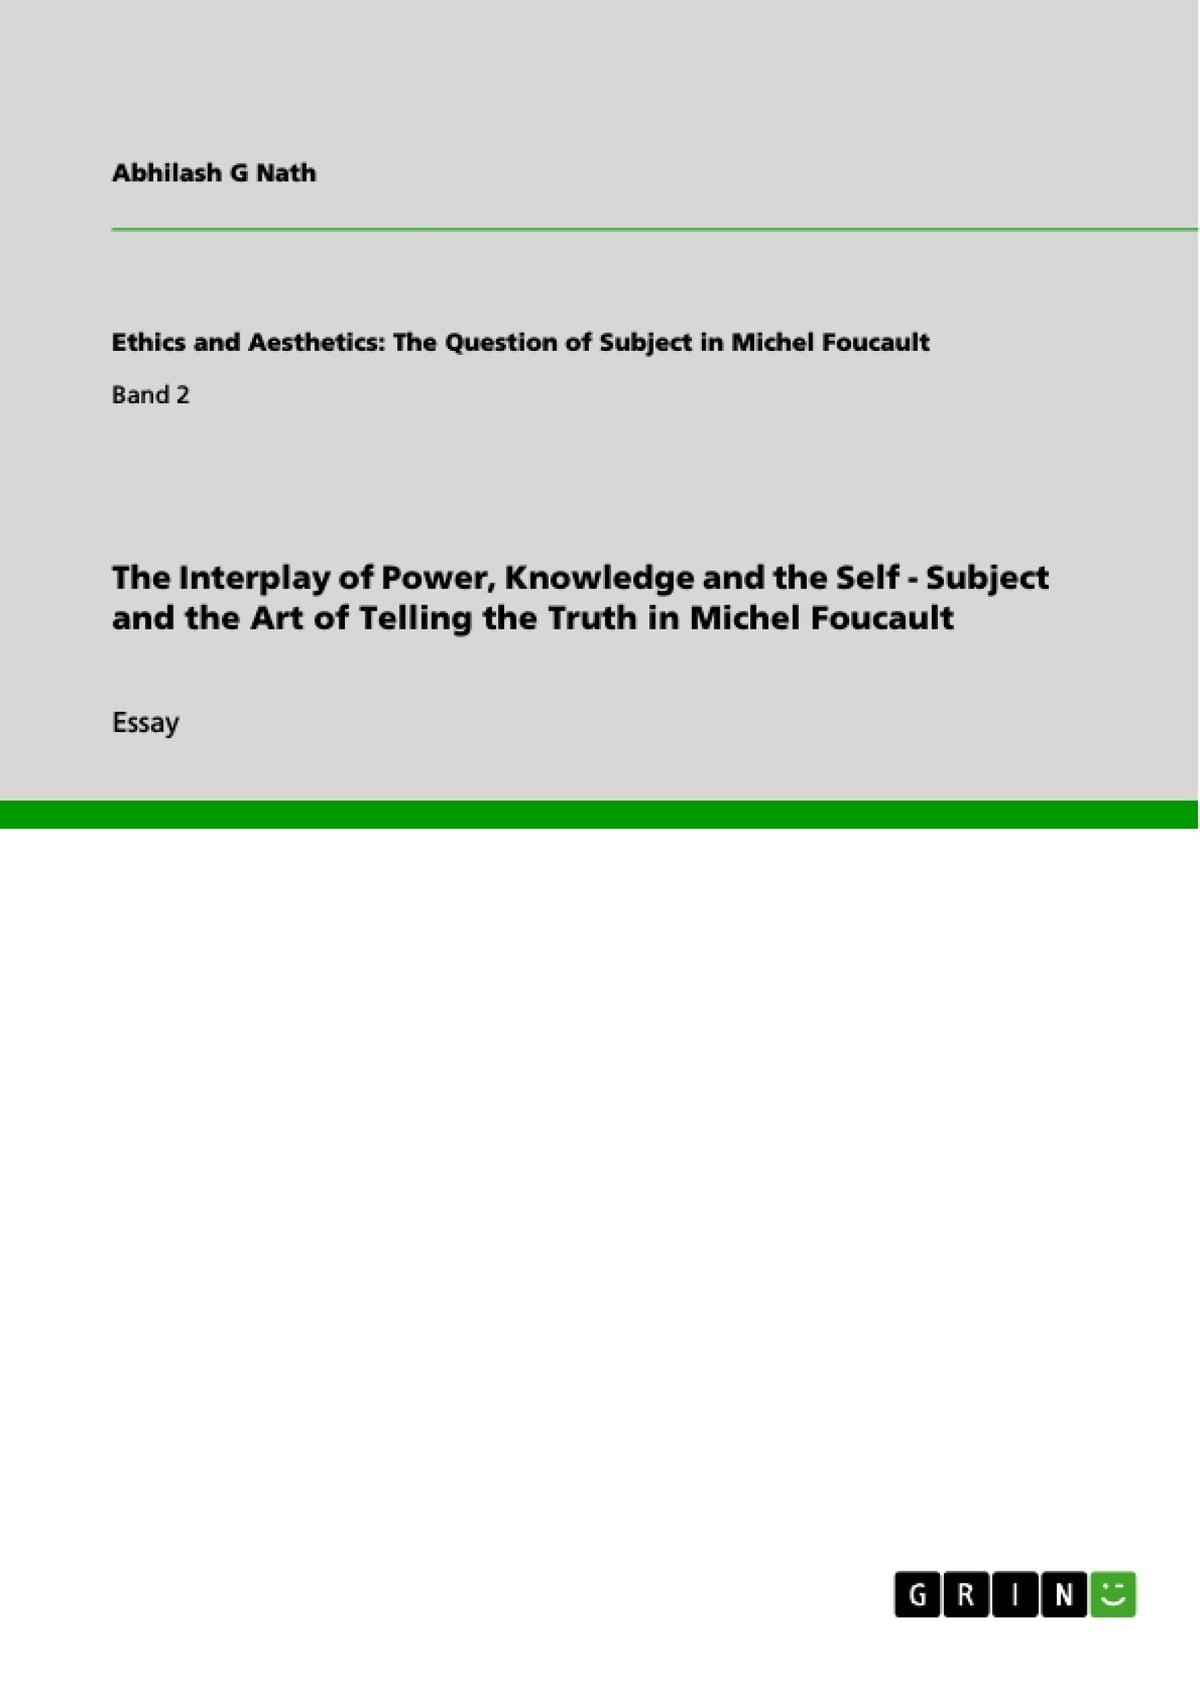 High School Application Essay Examples The Interplay Of Power Knowledge And The Self  Subject And The Art Of  Telling The Truth In Michel Foucault Ebook By Abhilash G Nath     How To Write A High School Essay also Importance Of English Essay The Interplay Of Power Knowledge And The Self  Subject And The Art  How To Write A Good Essay For High School